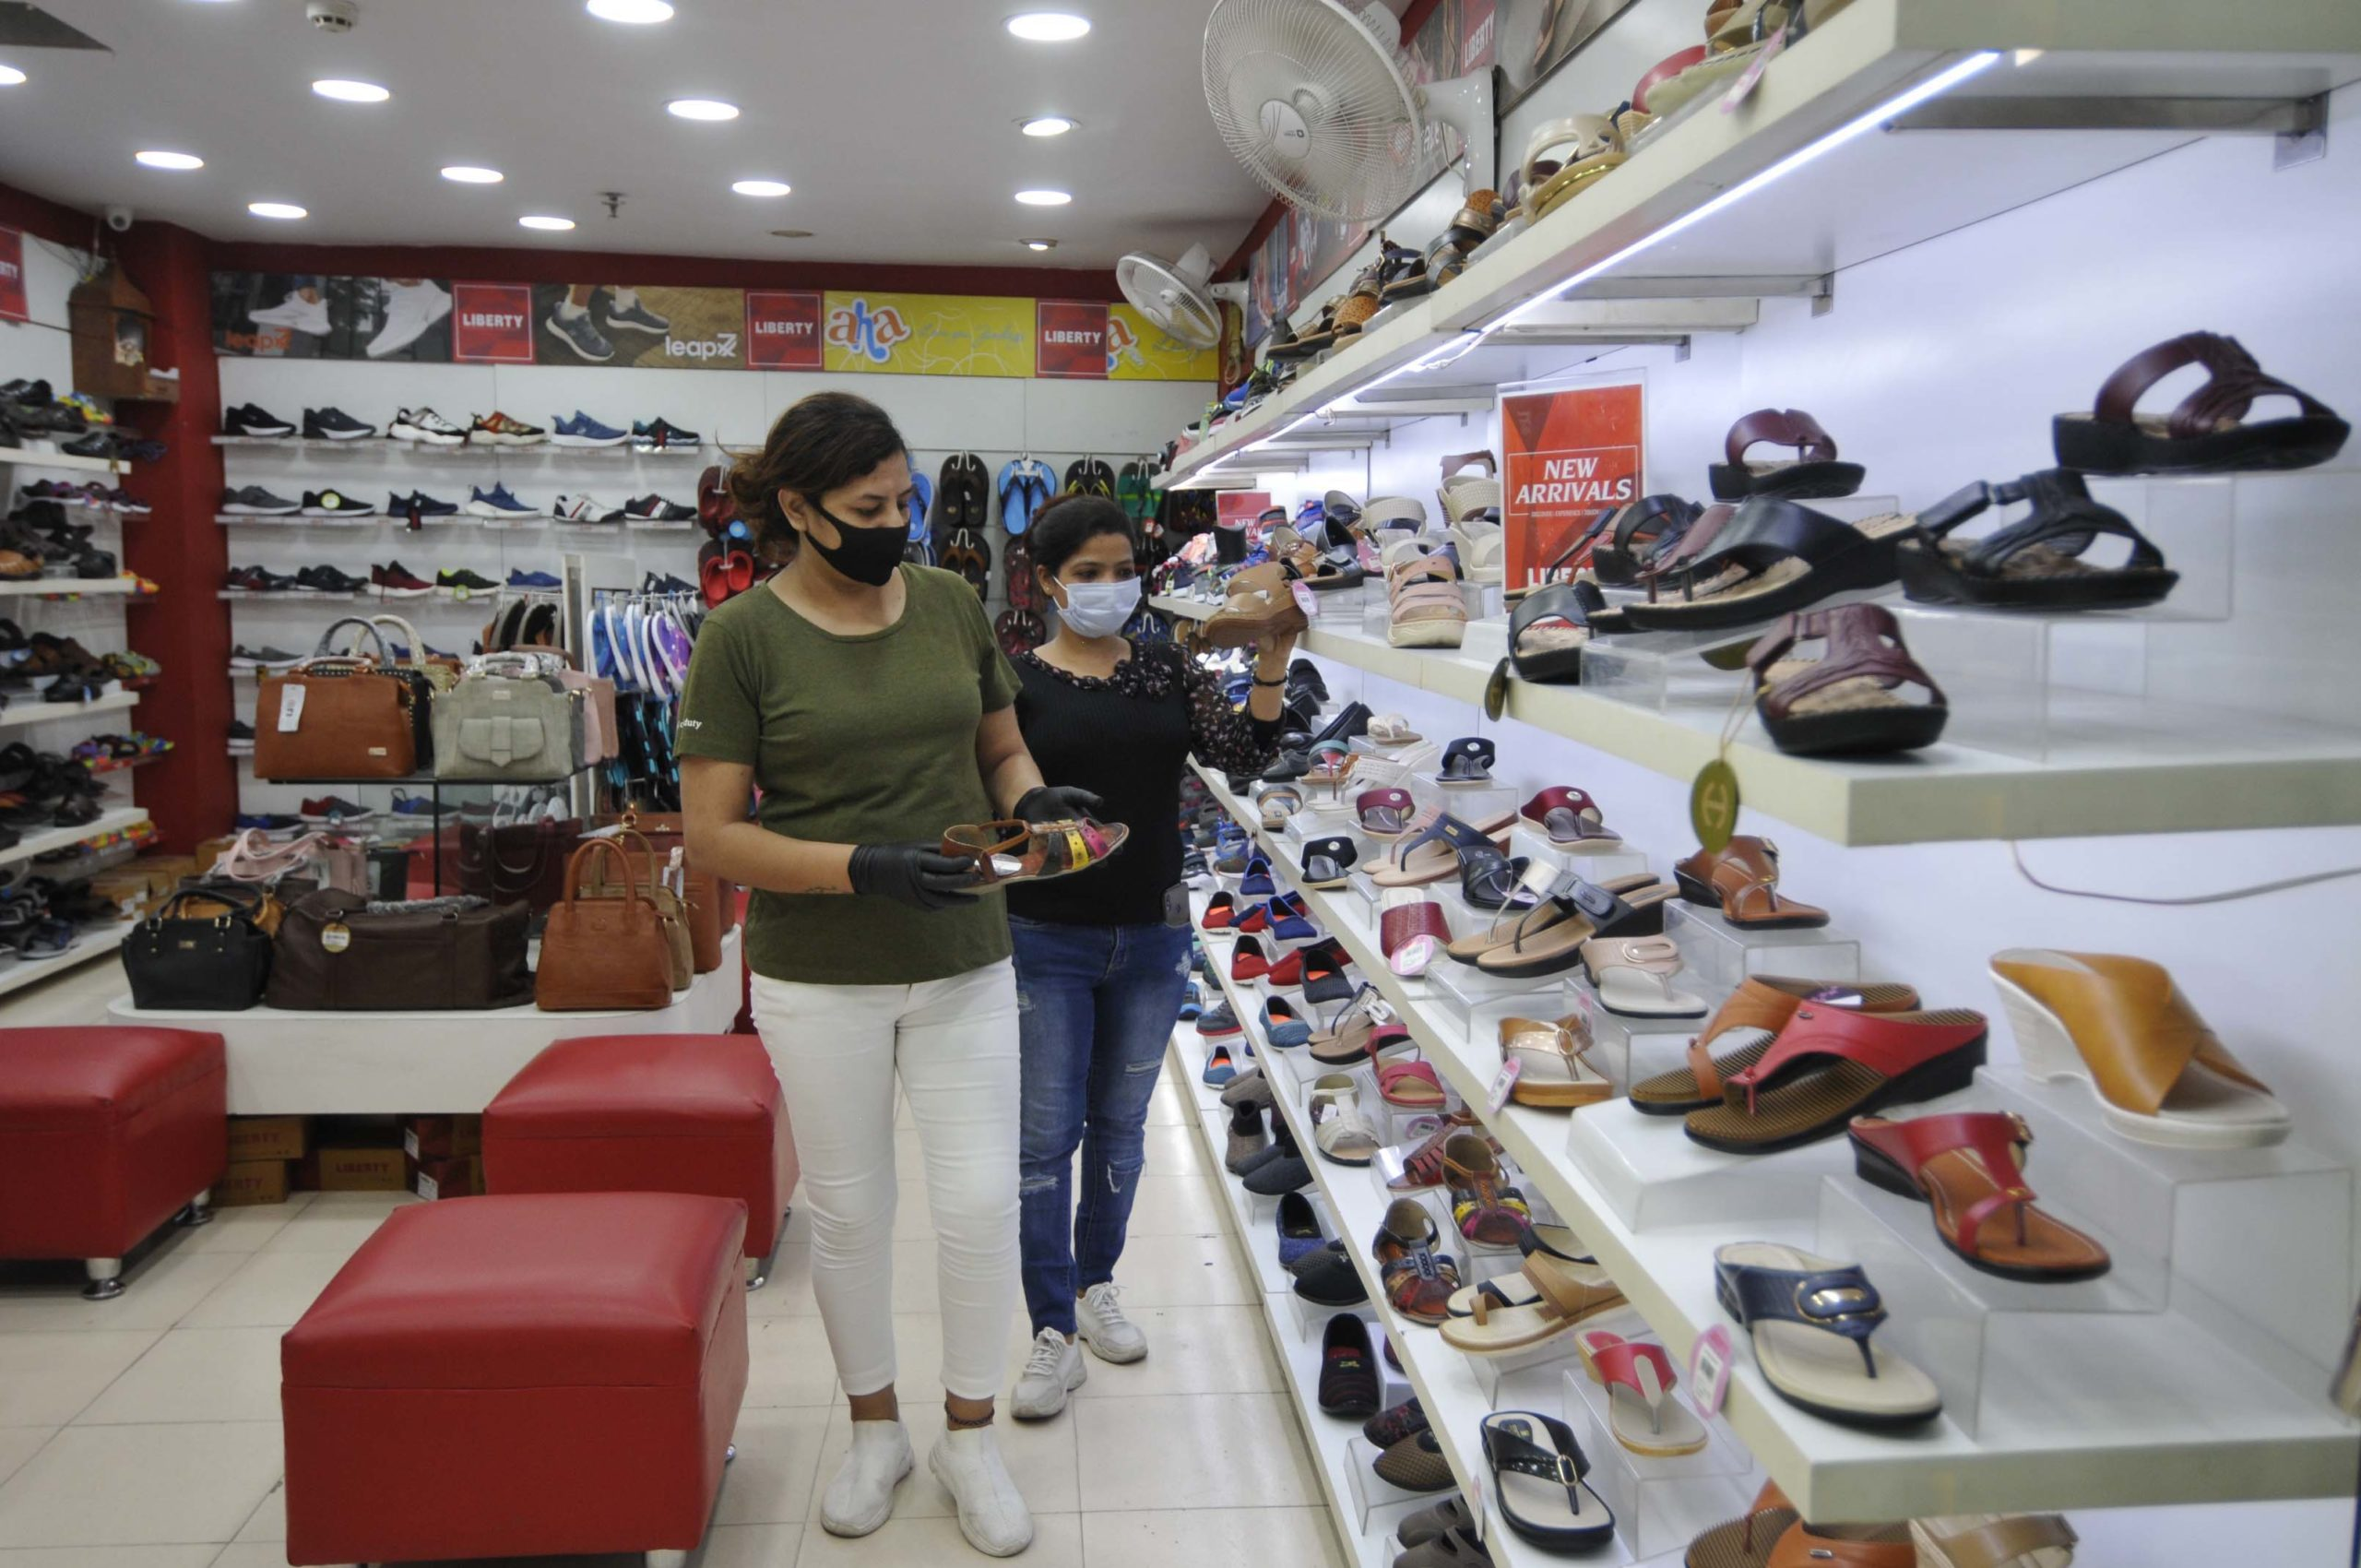 People shop inside a footwear store in Smart Bharat Mall in Noida, India.